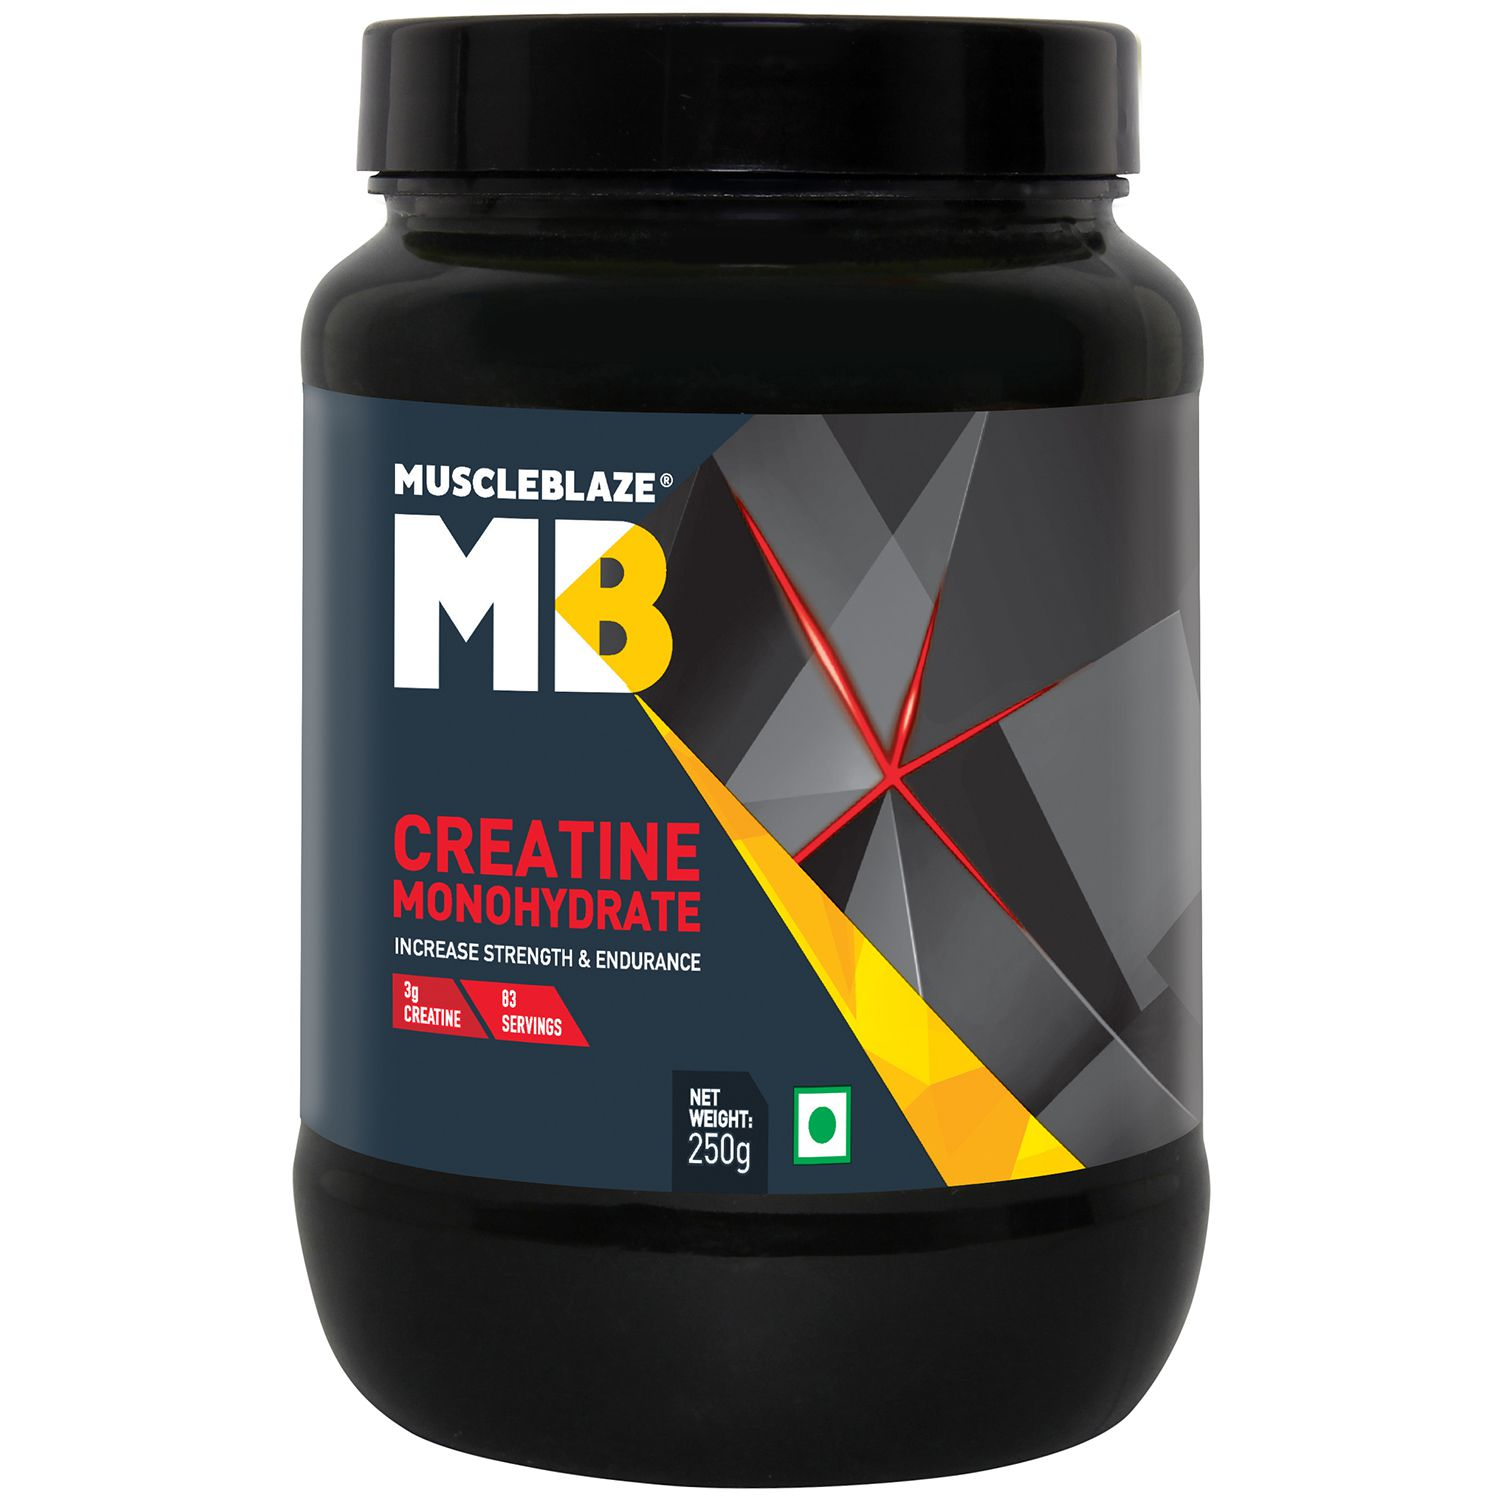 MuscleBlaze Monohyrate Creatine, Improves Performance,0.55 lb/  250 g, 83 Servings (Unflavoured)